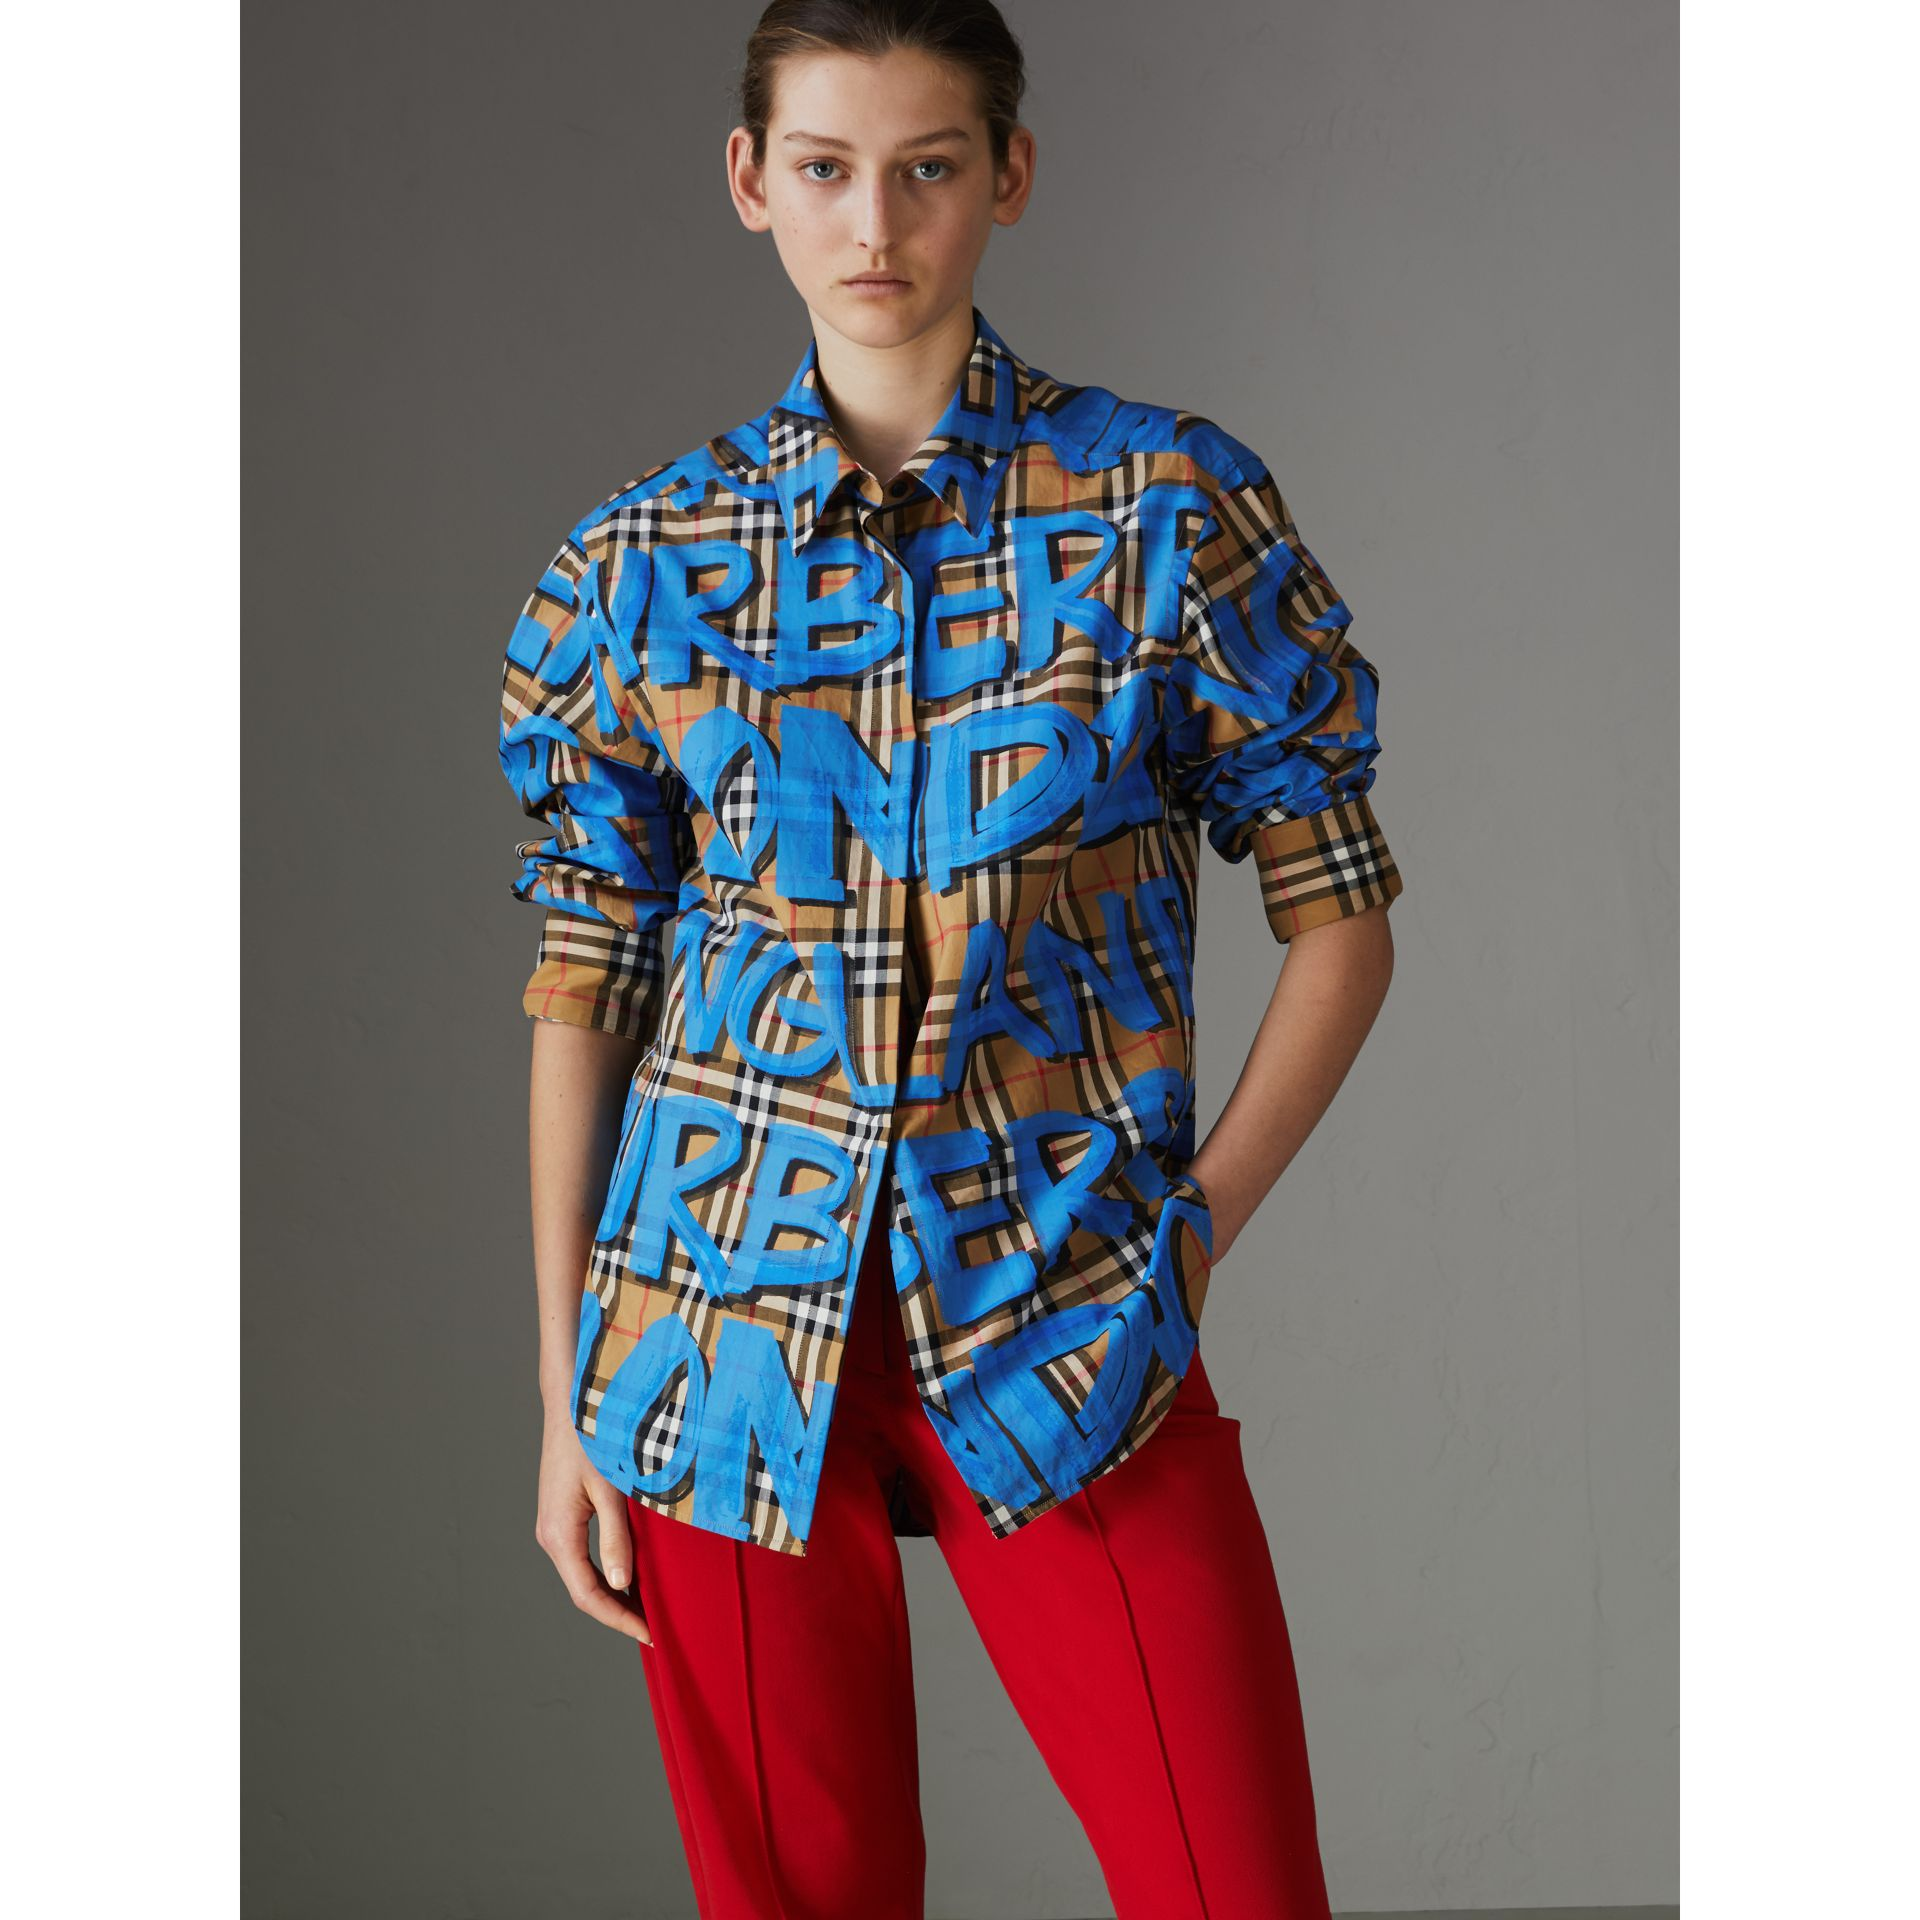 Graffiti Print Vintage Check Cotton Shirt in Bright Blue | Burberry United Kingdom - gallery image 4